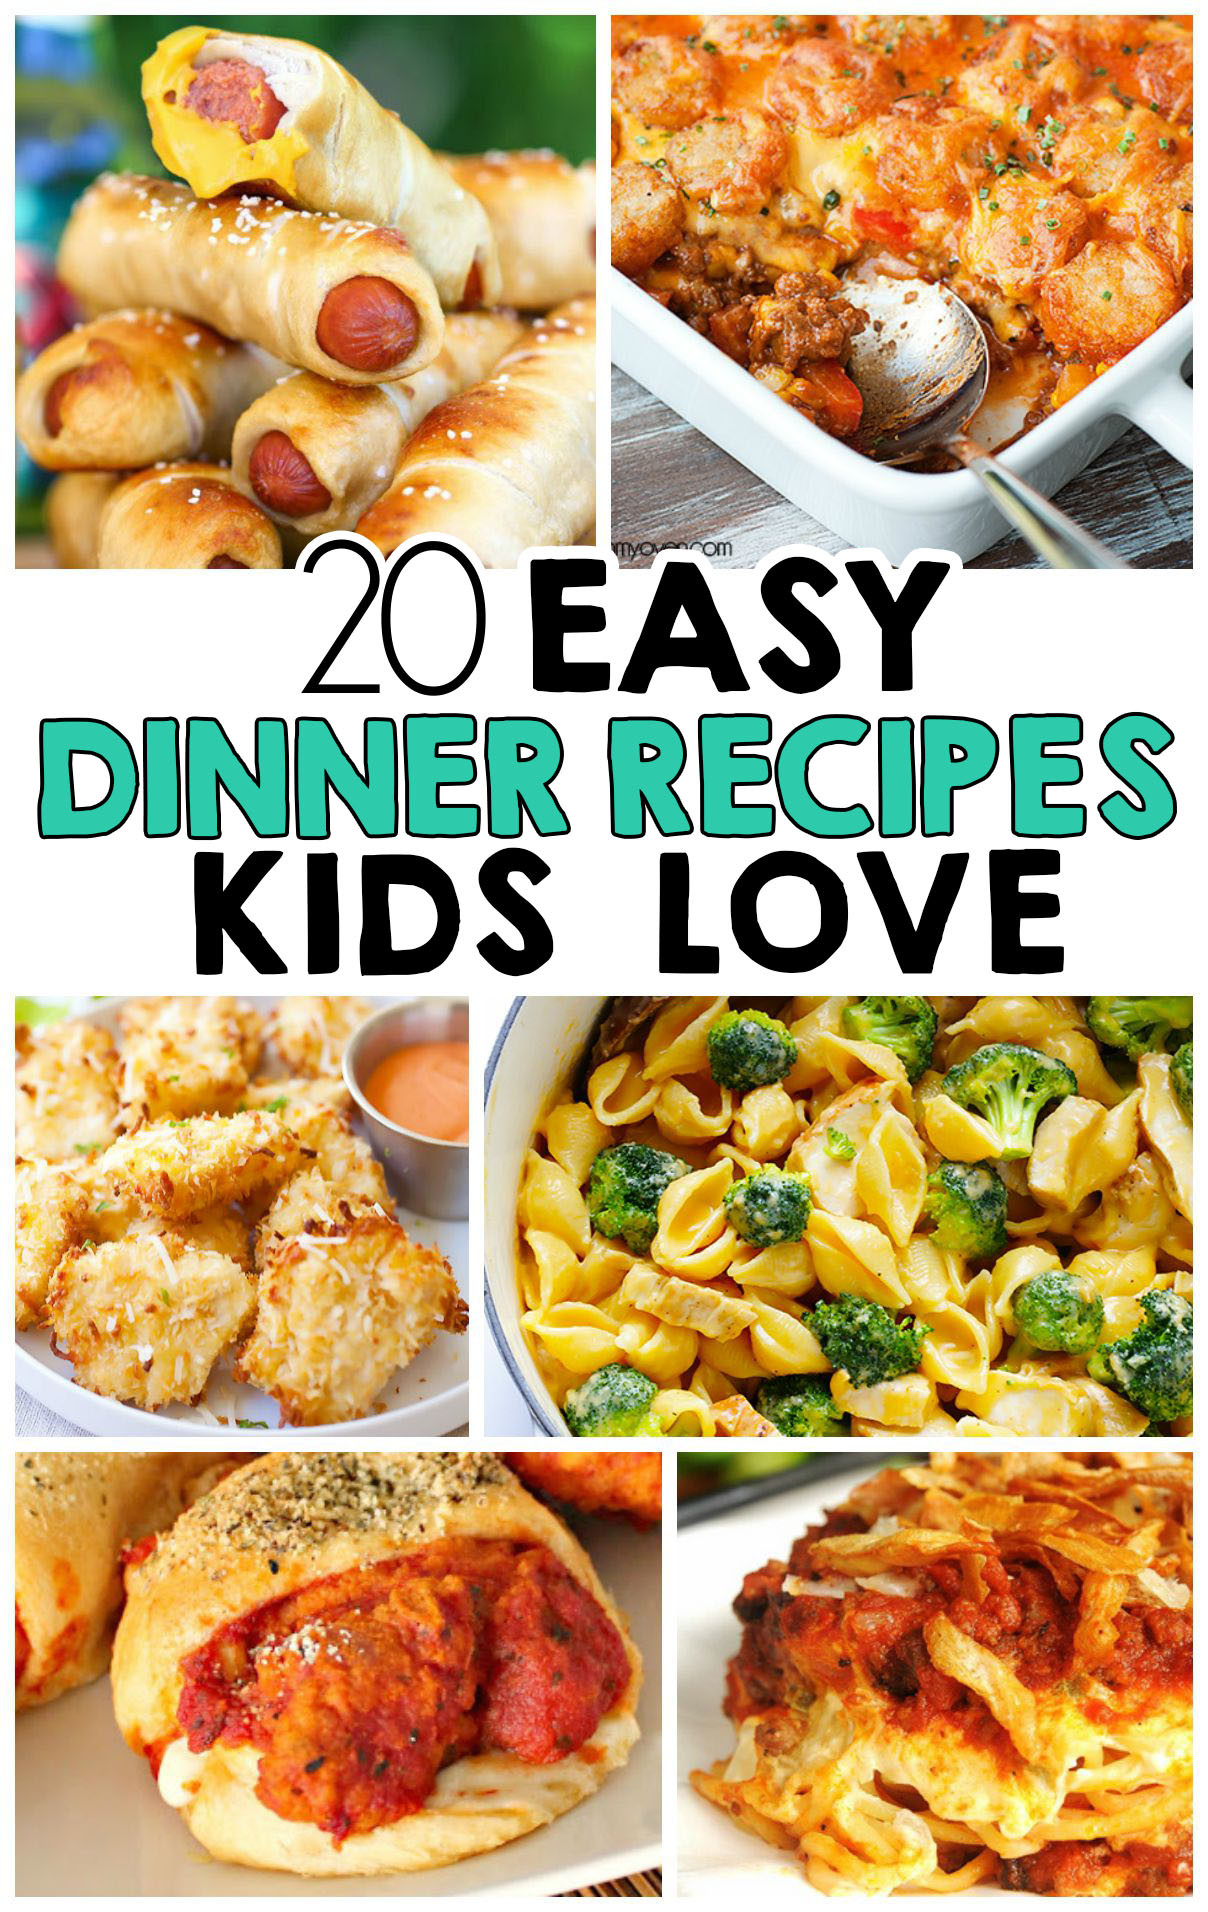 Quick Recipes For Dinner  20 Easy Dinner Recipes That Kids Love I Heart Arts n Crafts